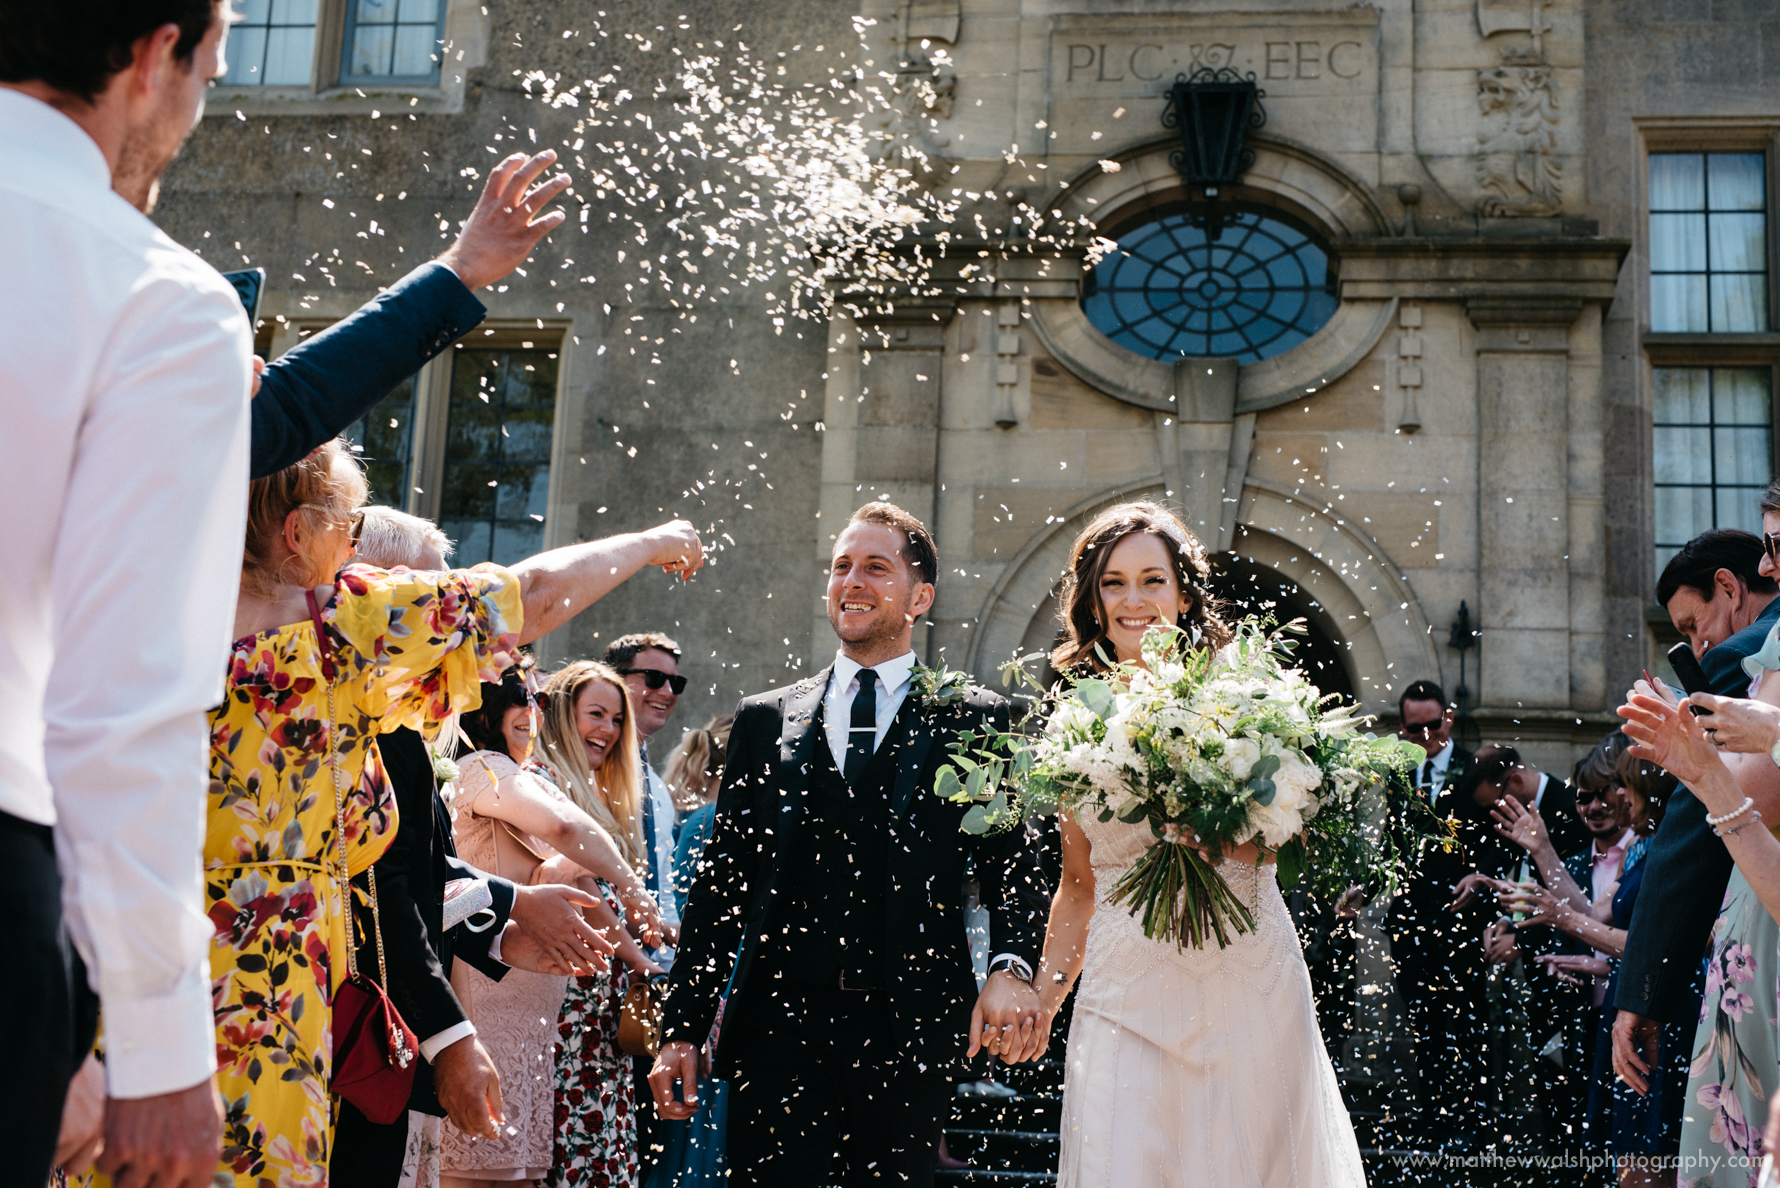 A captured moment at Burton Court as the bride and groom are showered with Confetti